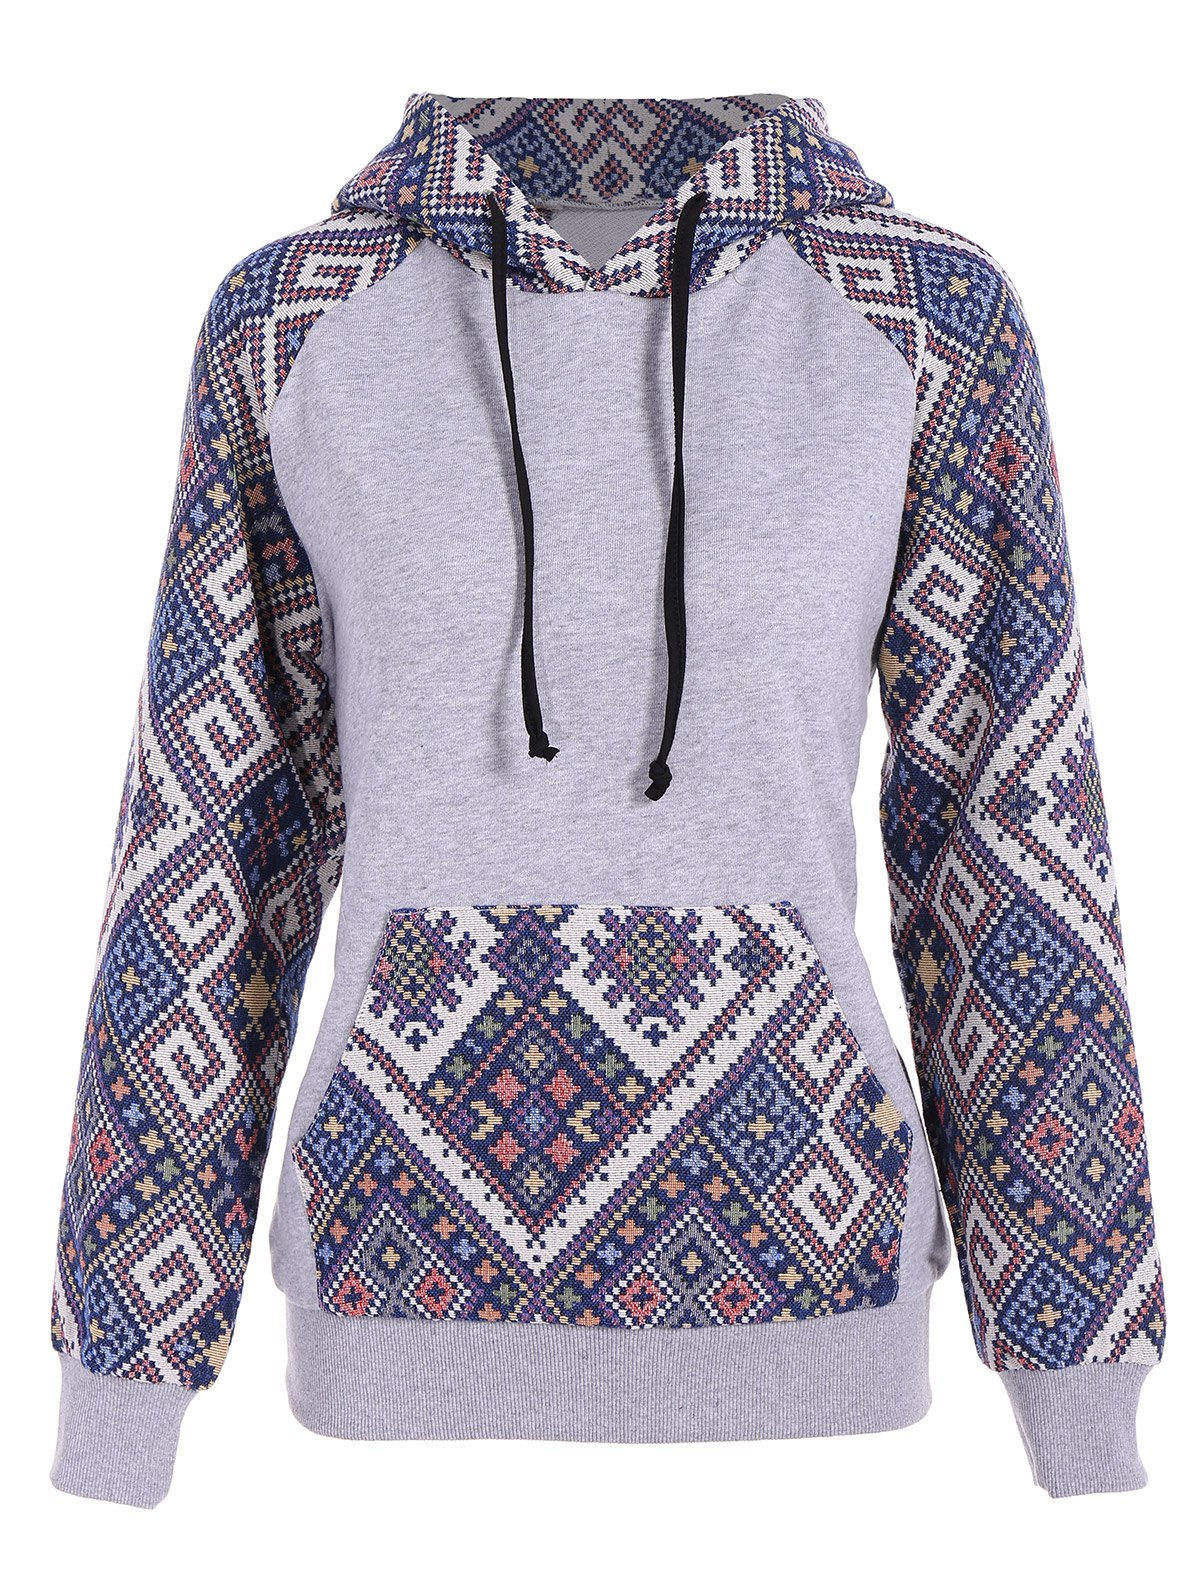 Front Pocket Jacquard Tribal Hoodie - GRAY/BLUE S